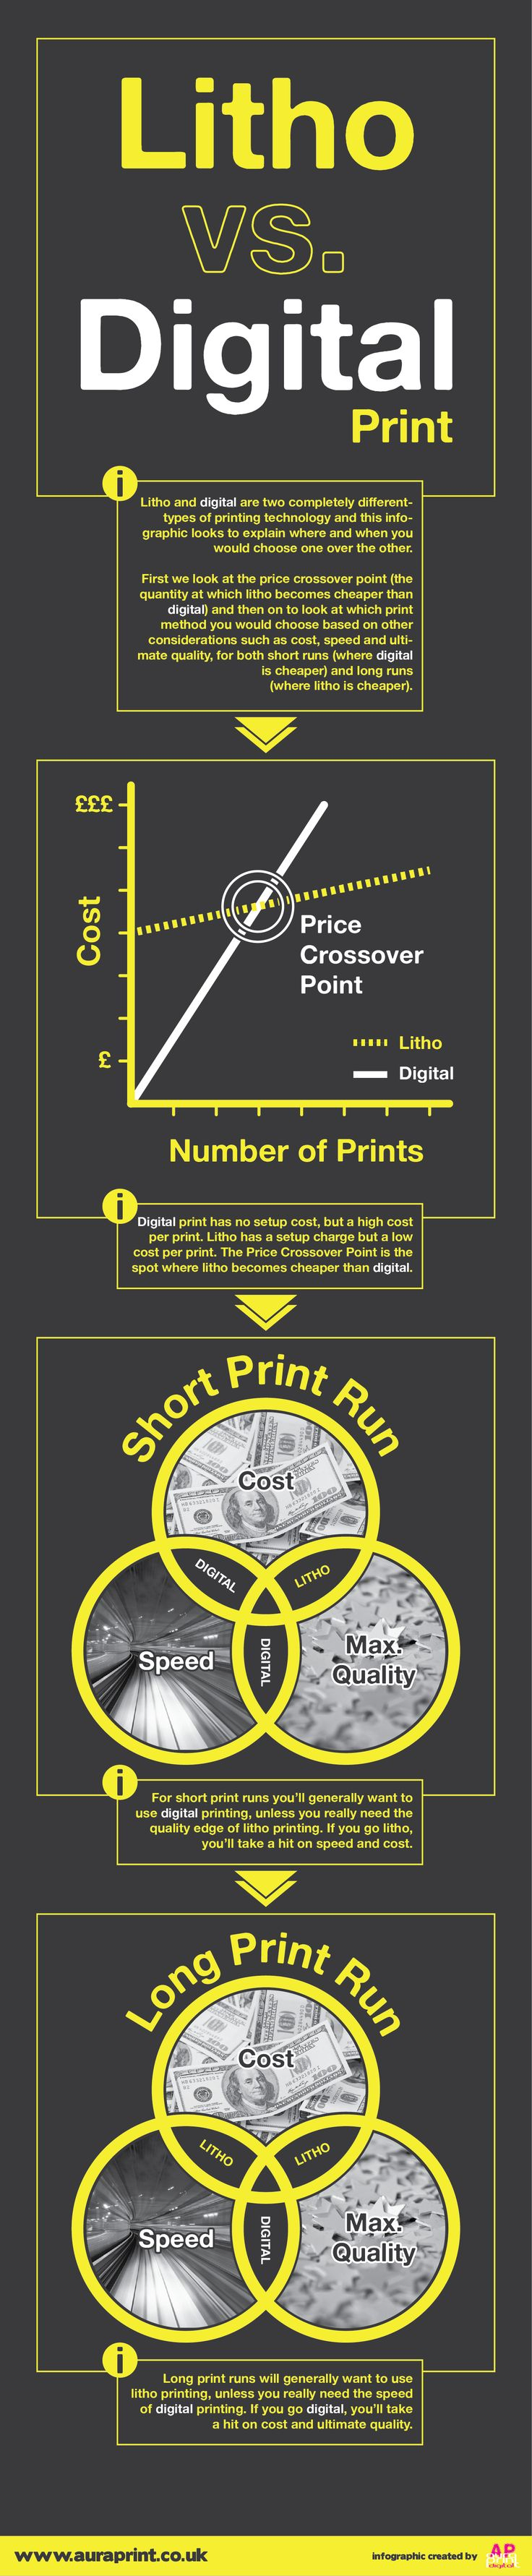 Color printing vs black and white cost - Whats The Difference Between Litho Offset Printing And Digital Printing